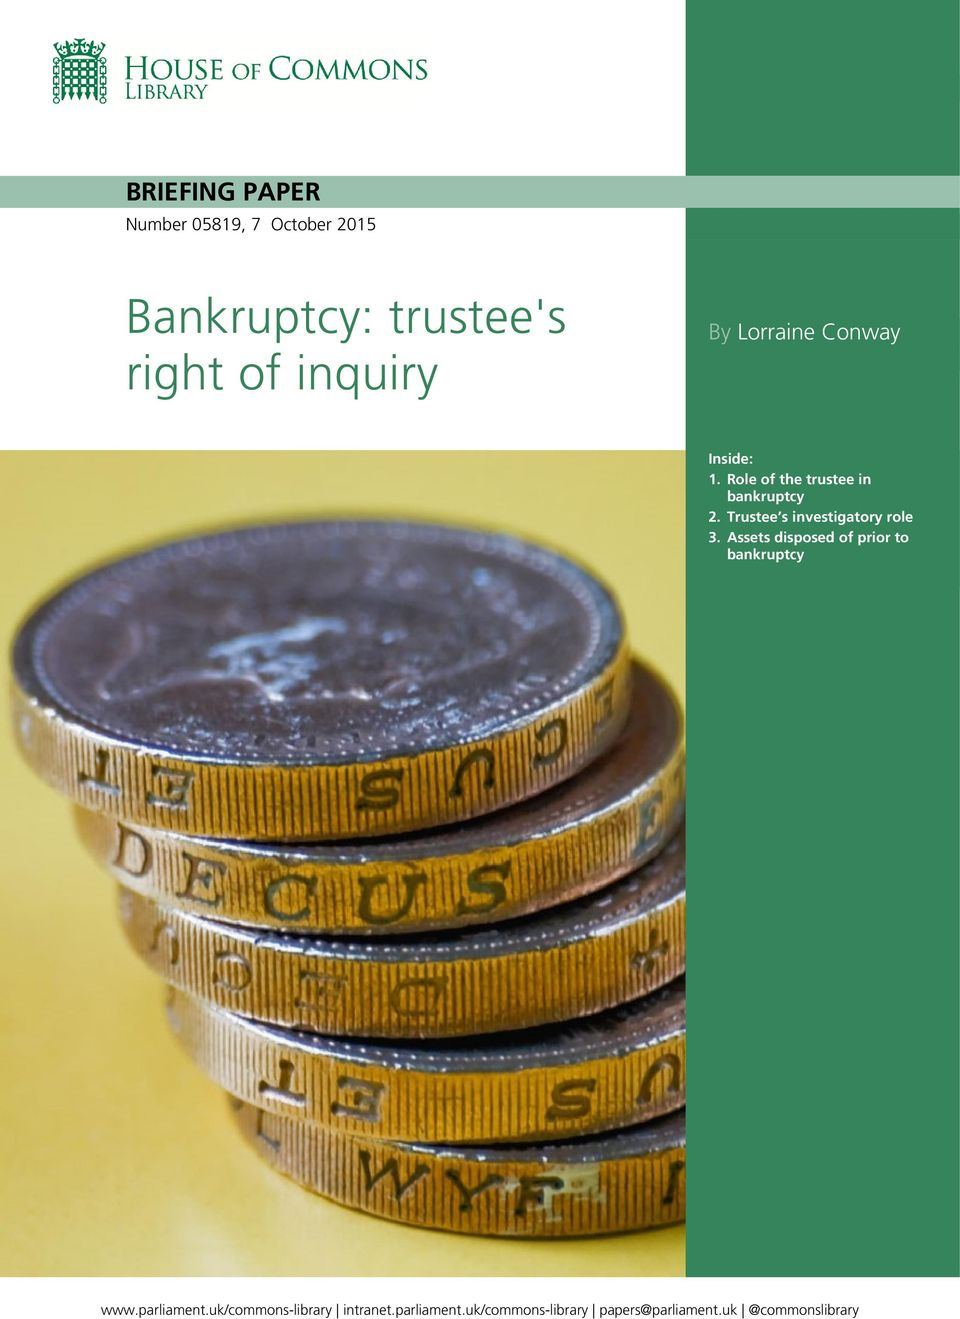 Trustee s investigatory role 3. Assets disposed of prior to bankruptcy www.